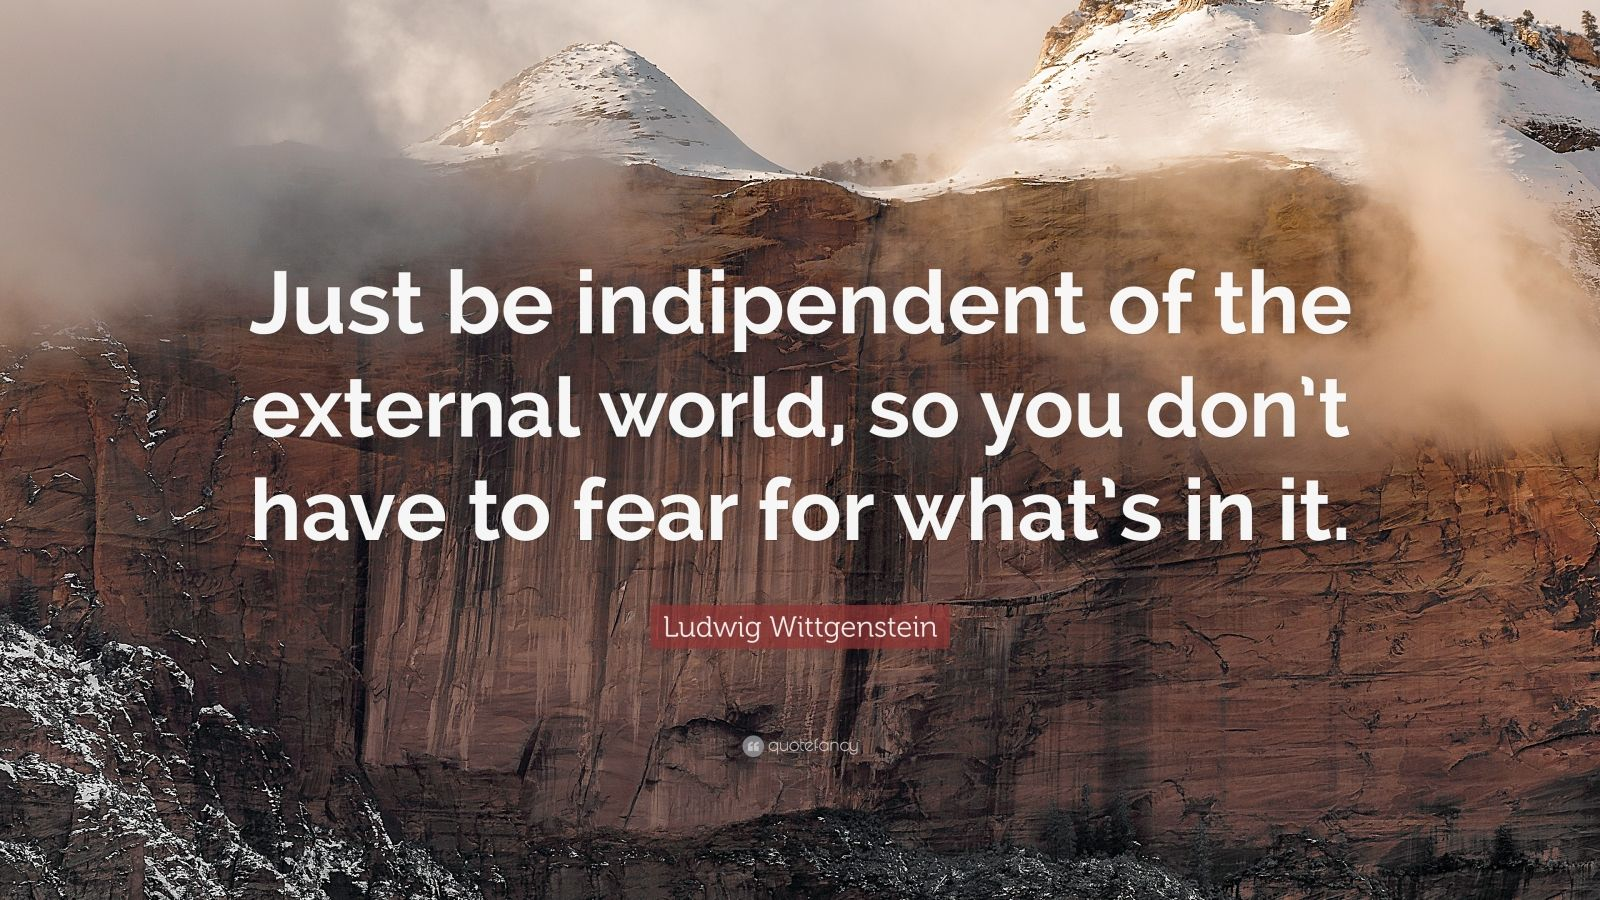 """Ludwig Wittgenstein Quote: """"Just be indipendent of the external world, so you don't have to fear for what's in it."""""""